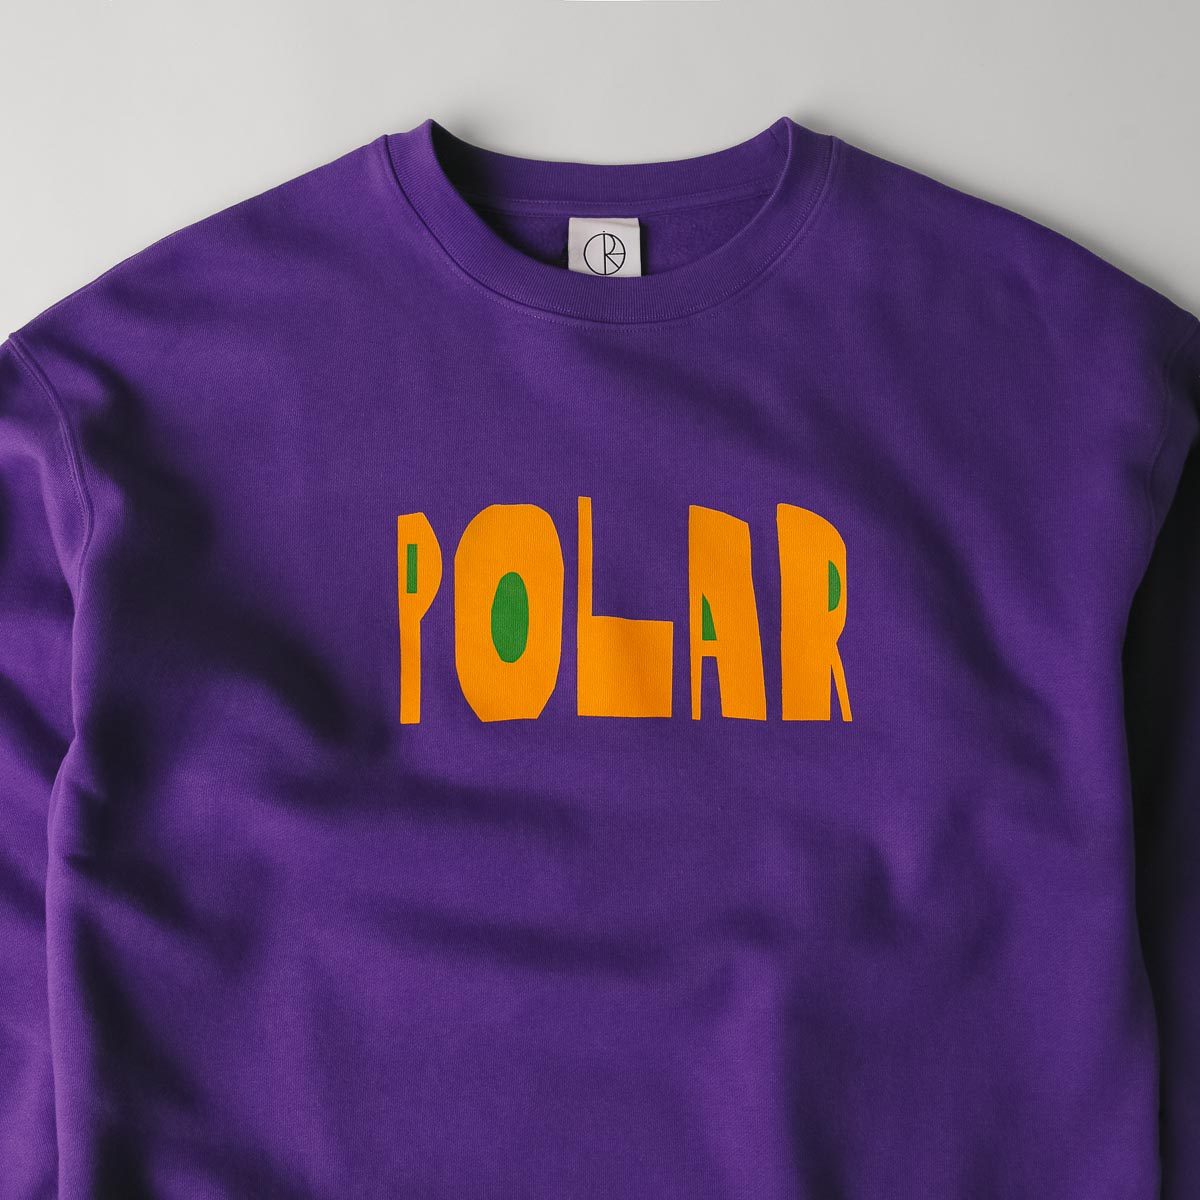 Polar SU21: Collection Overview